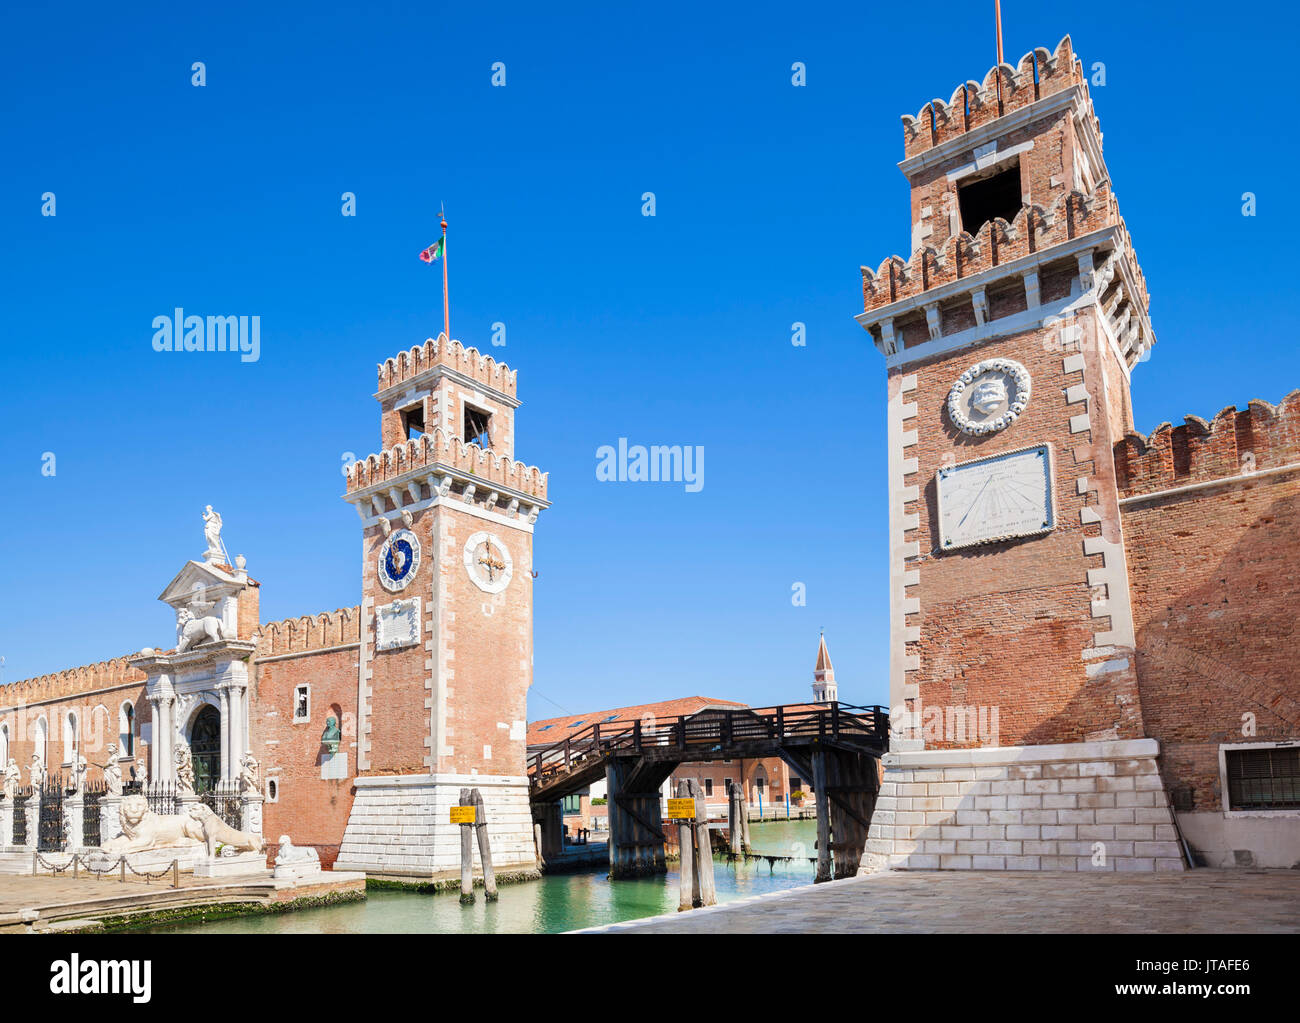 Porta Magna at the Venetian Arsenal (Arsenale di Venezia), a Byzantine shipyard and armoury, Venice, UNESCO, Veneto, Italy - Stock Image